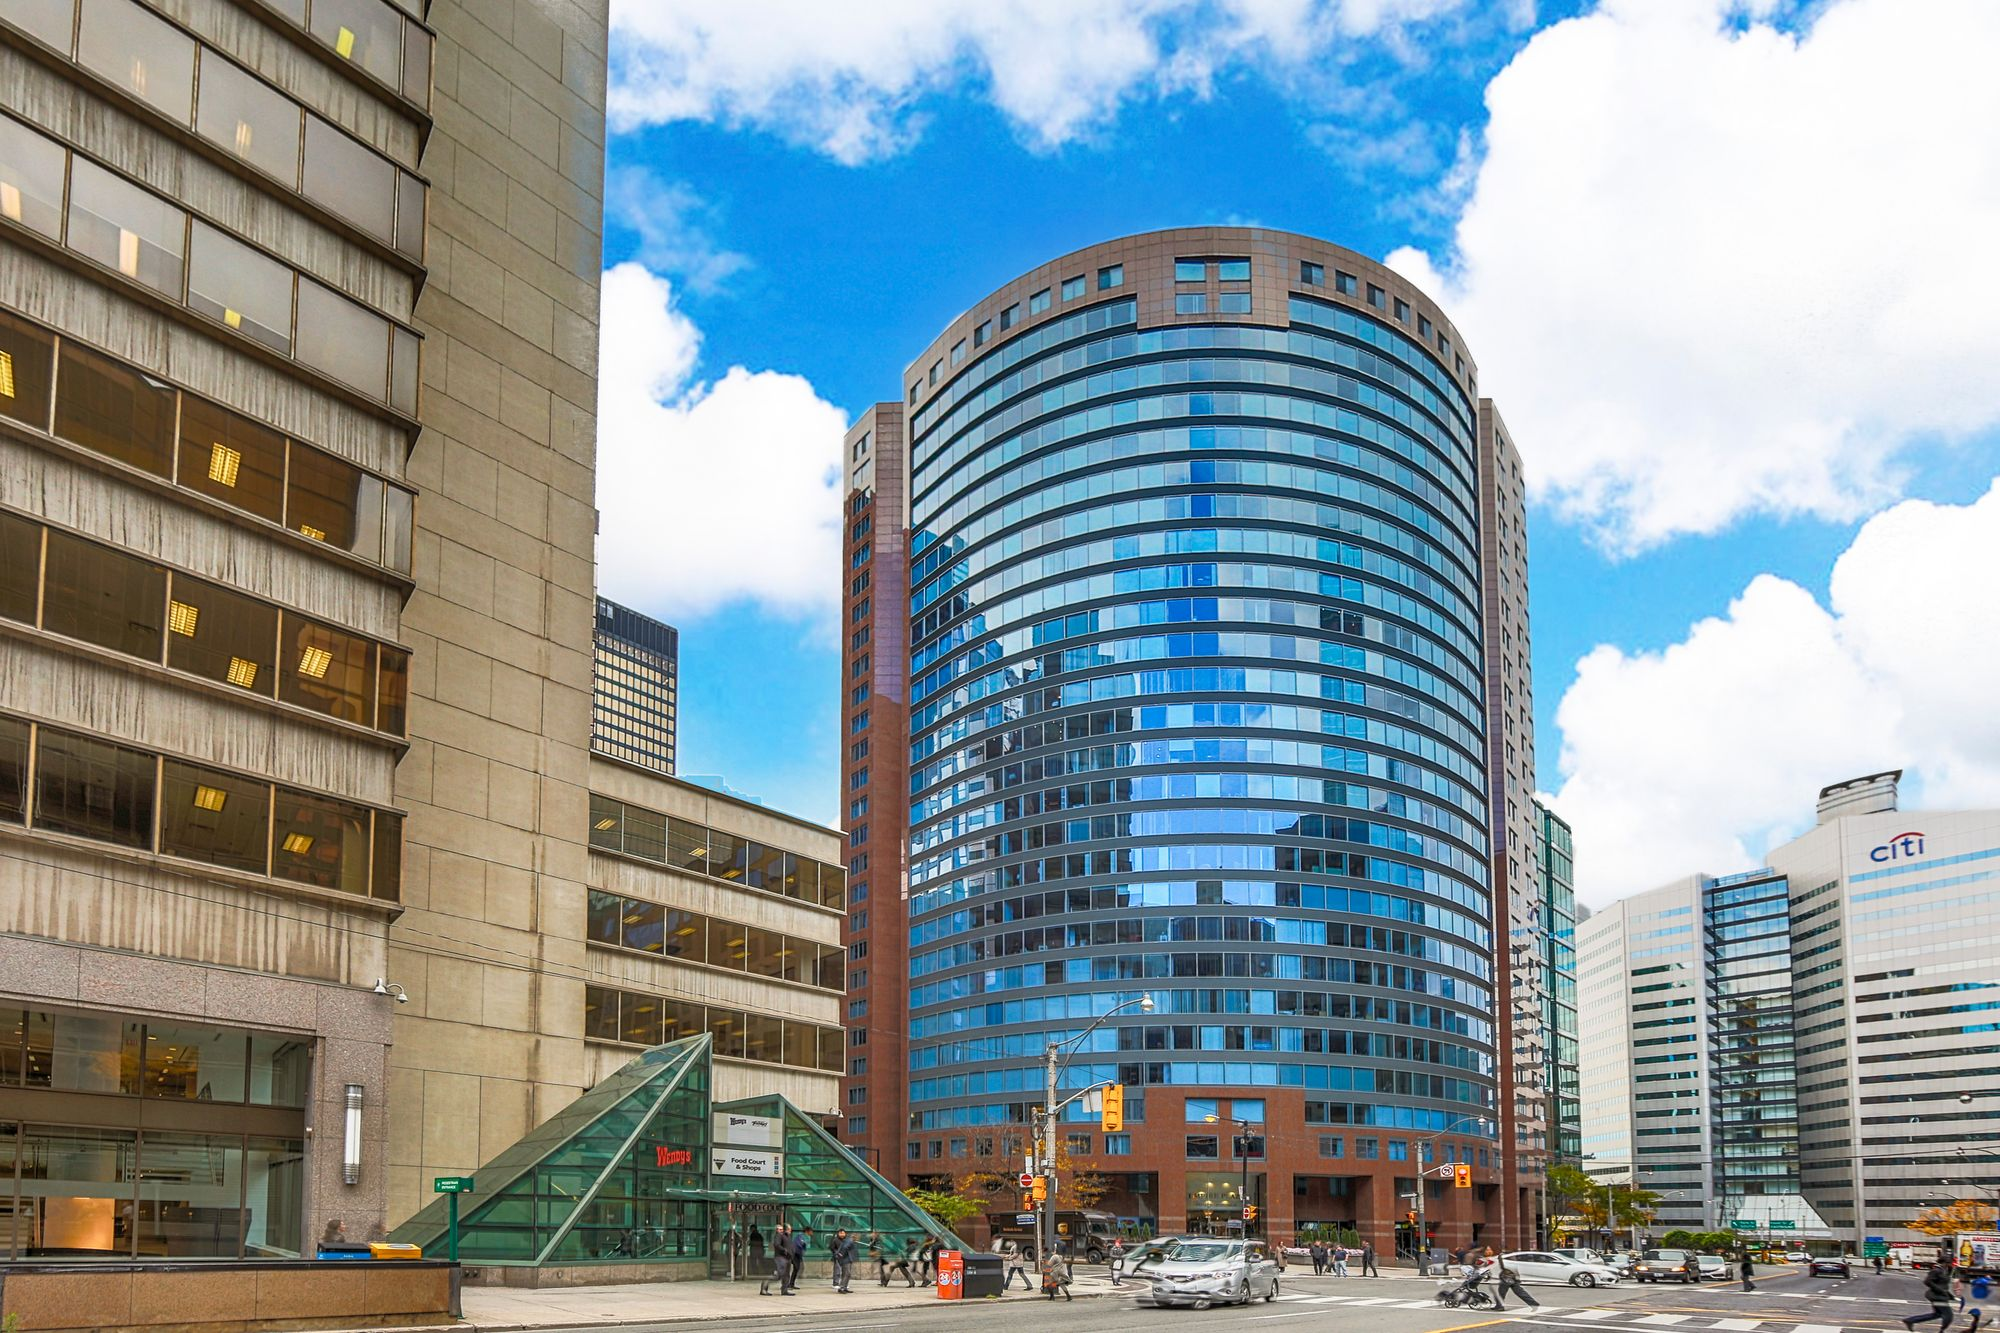 33 University Ave. This condo at Empire Plaza is located in  Downtown, Toronto - image #2 of 4 by Strata.ca